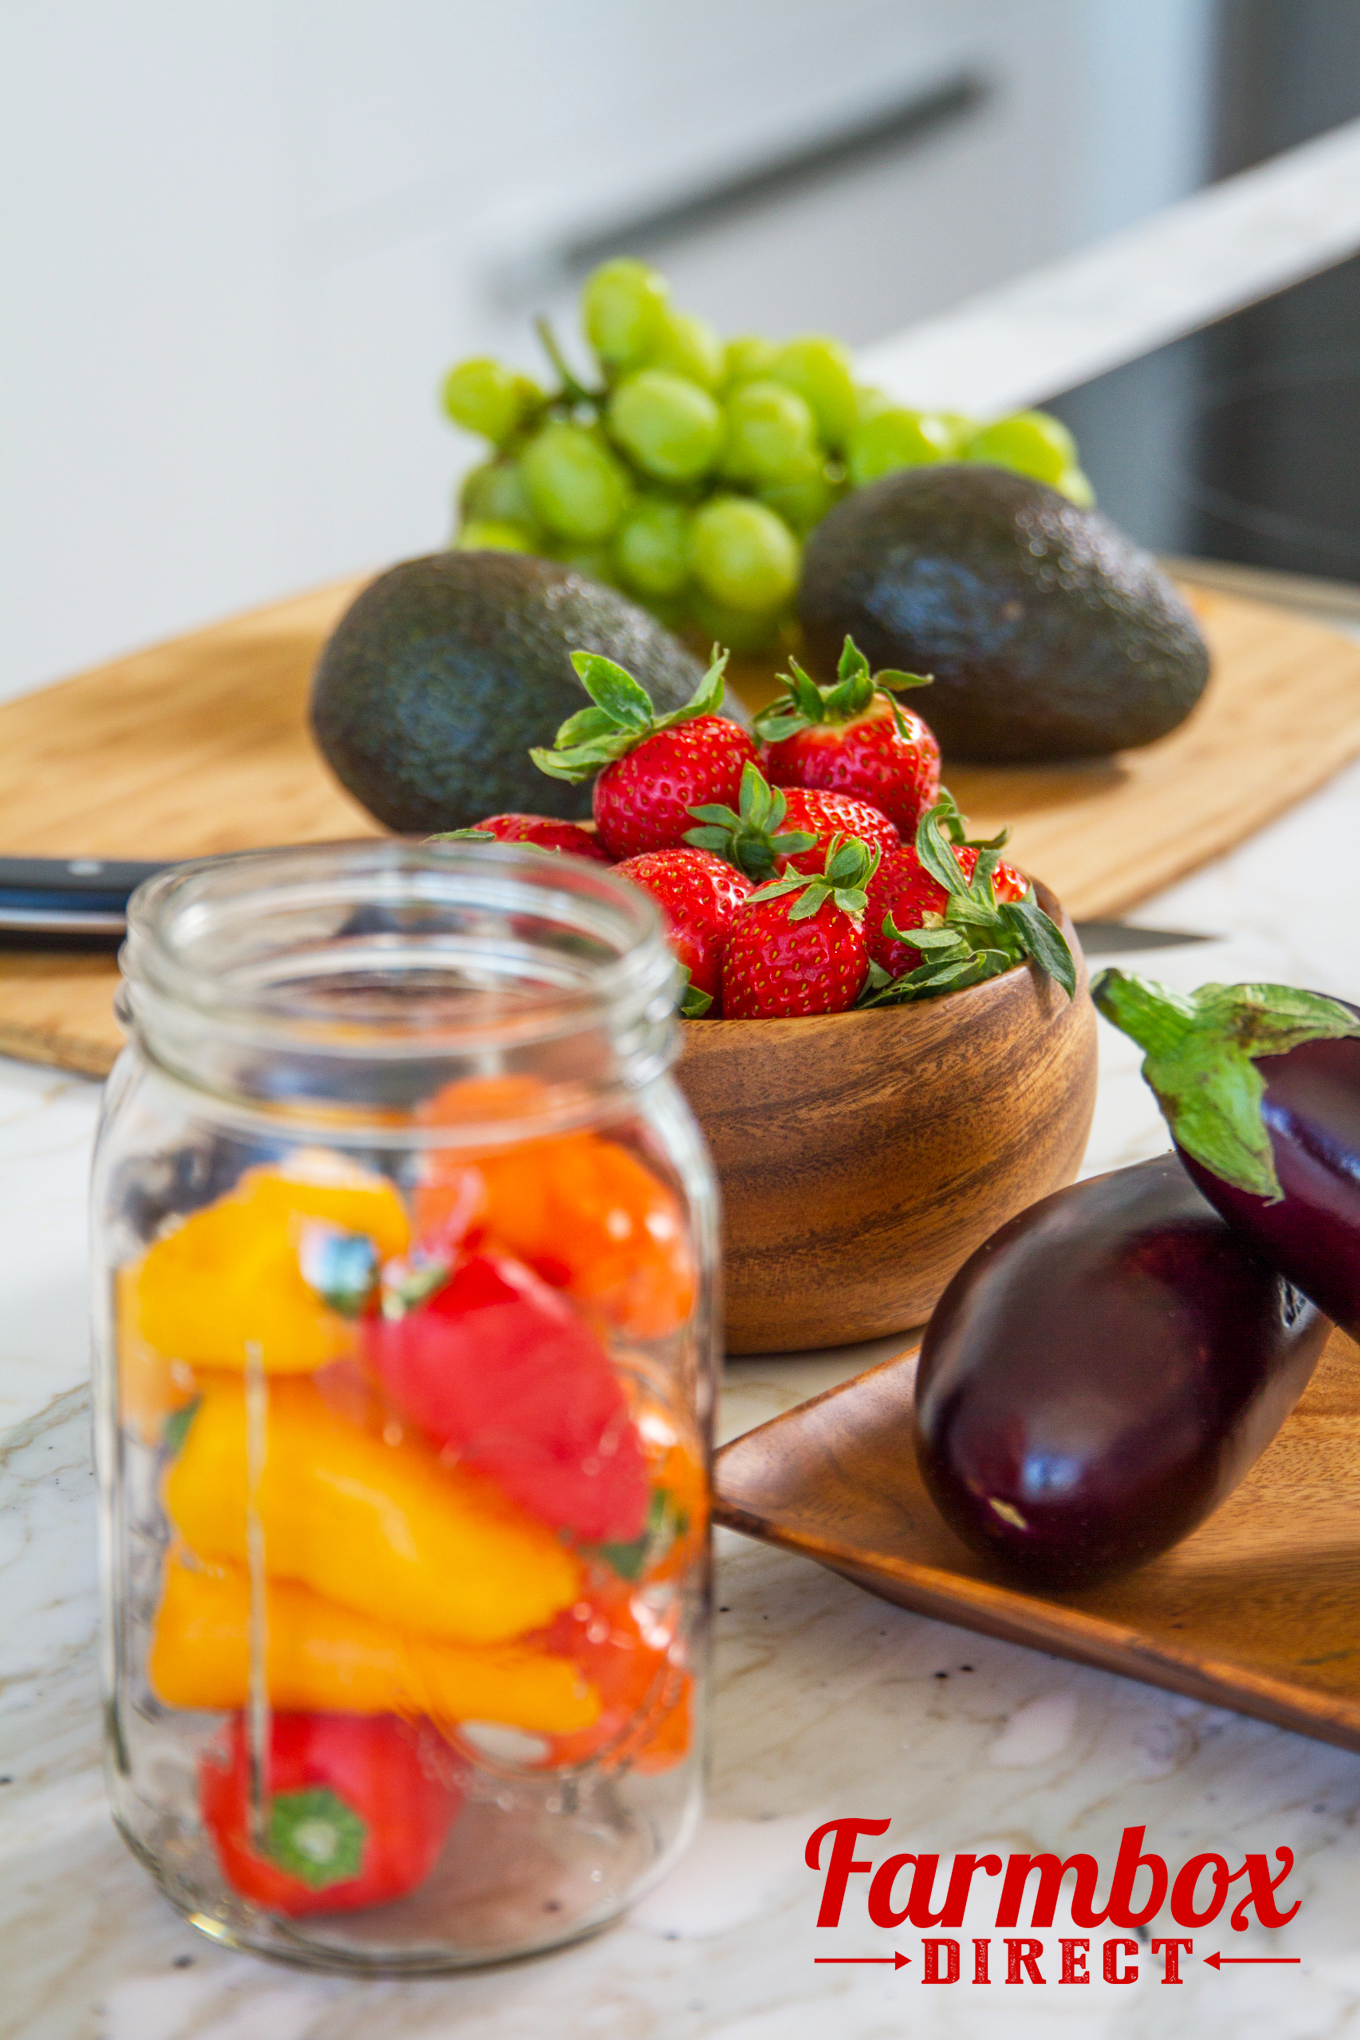 Fresh & Healthy produce delivered to your door! Organic